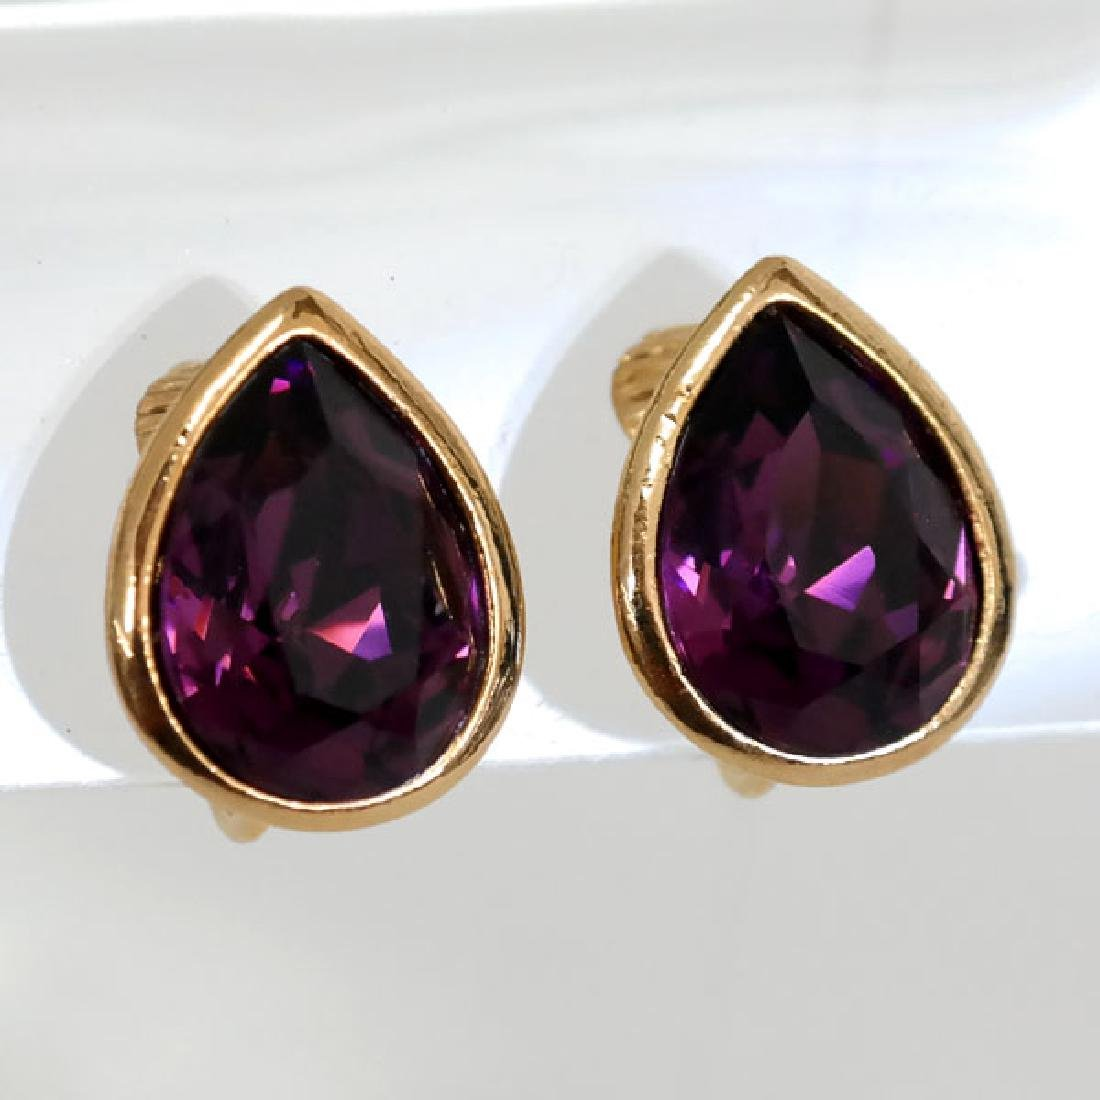 Gold plated pear shape ear clips with bezel set